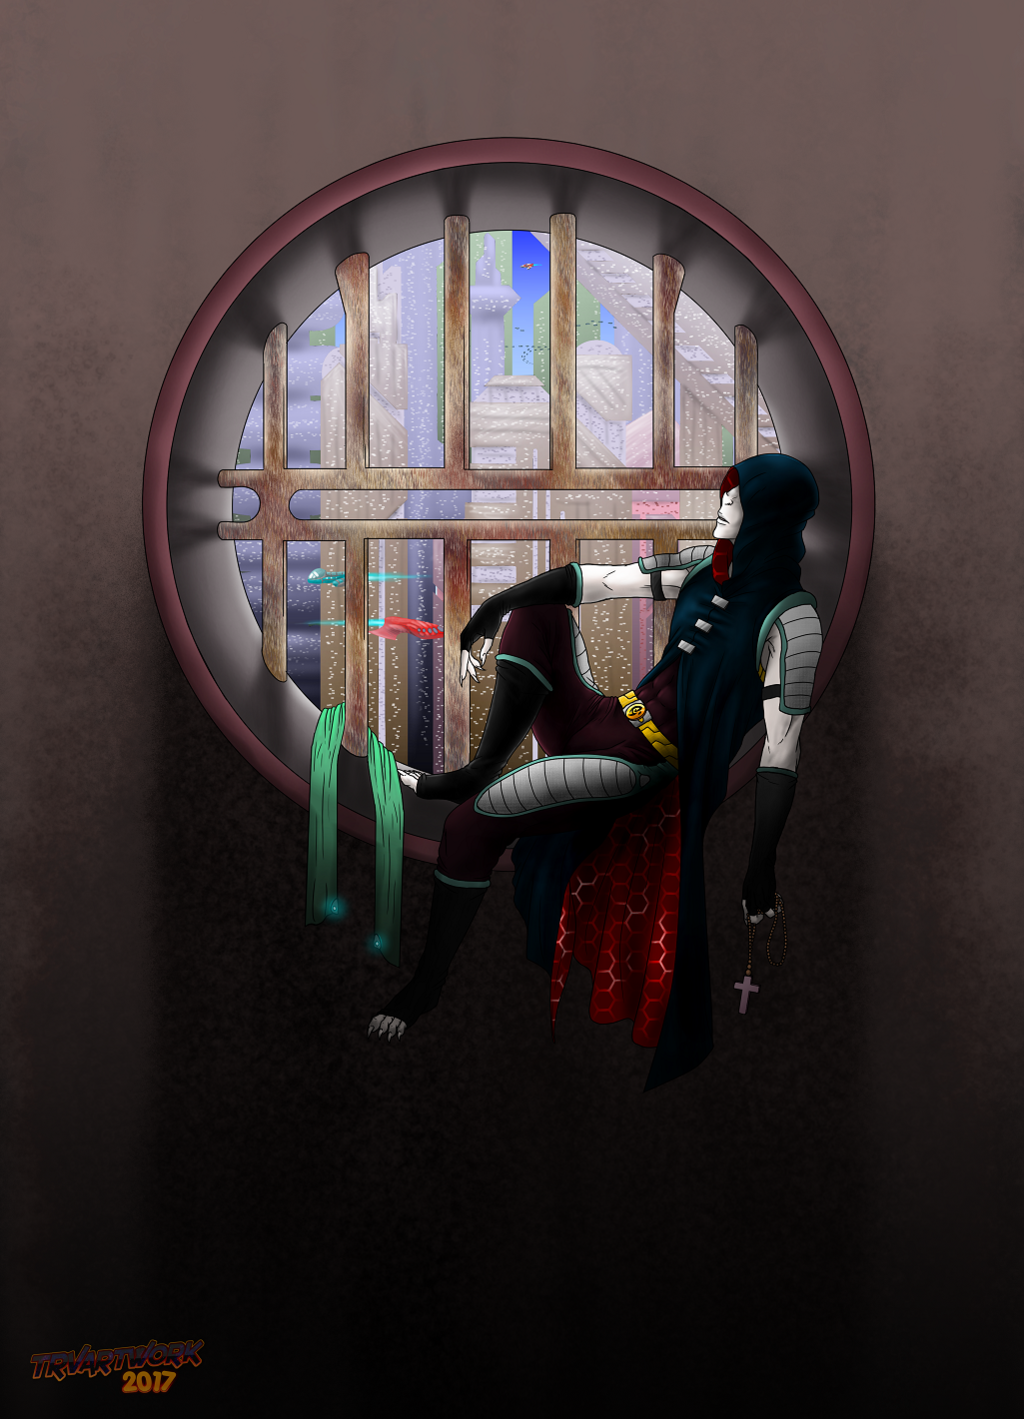 Most recent image: Cilling At The Window